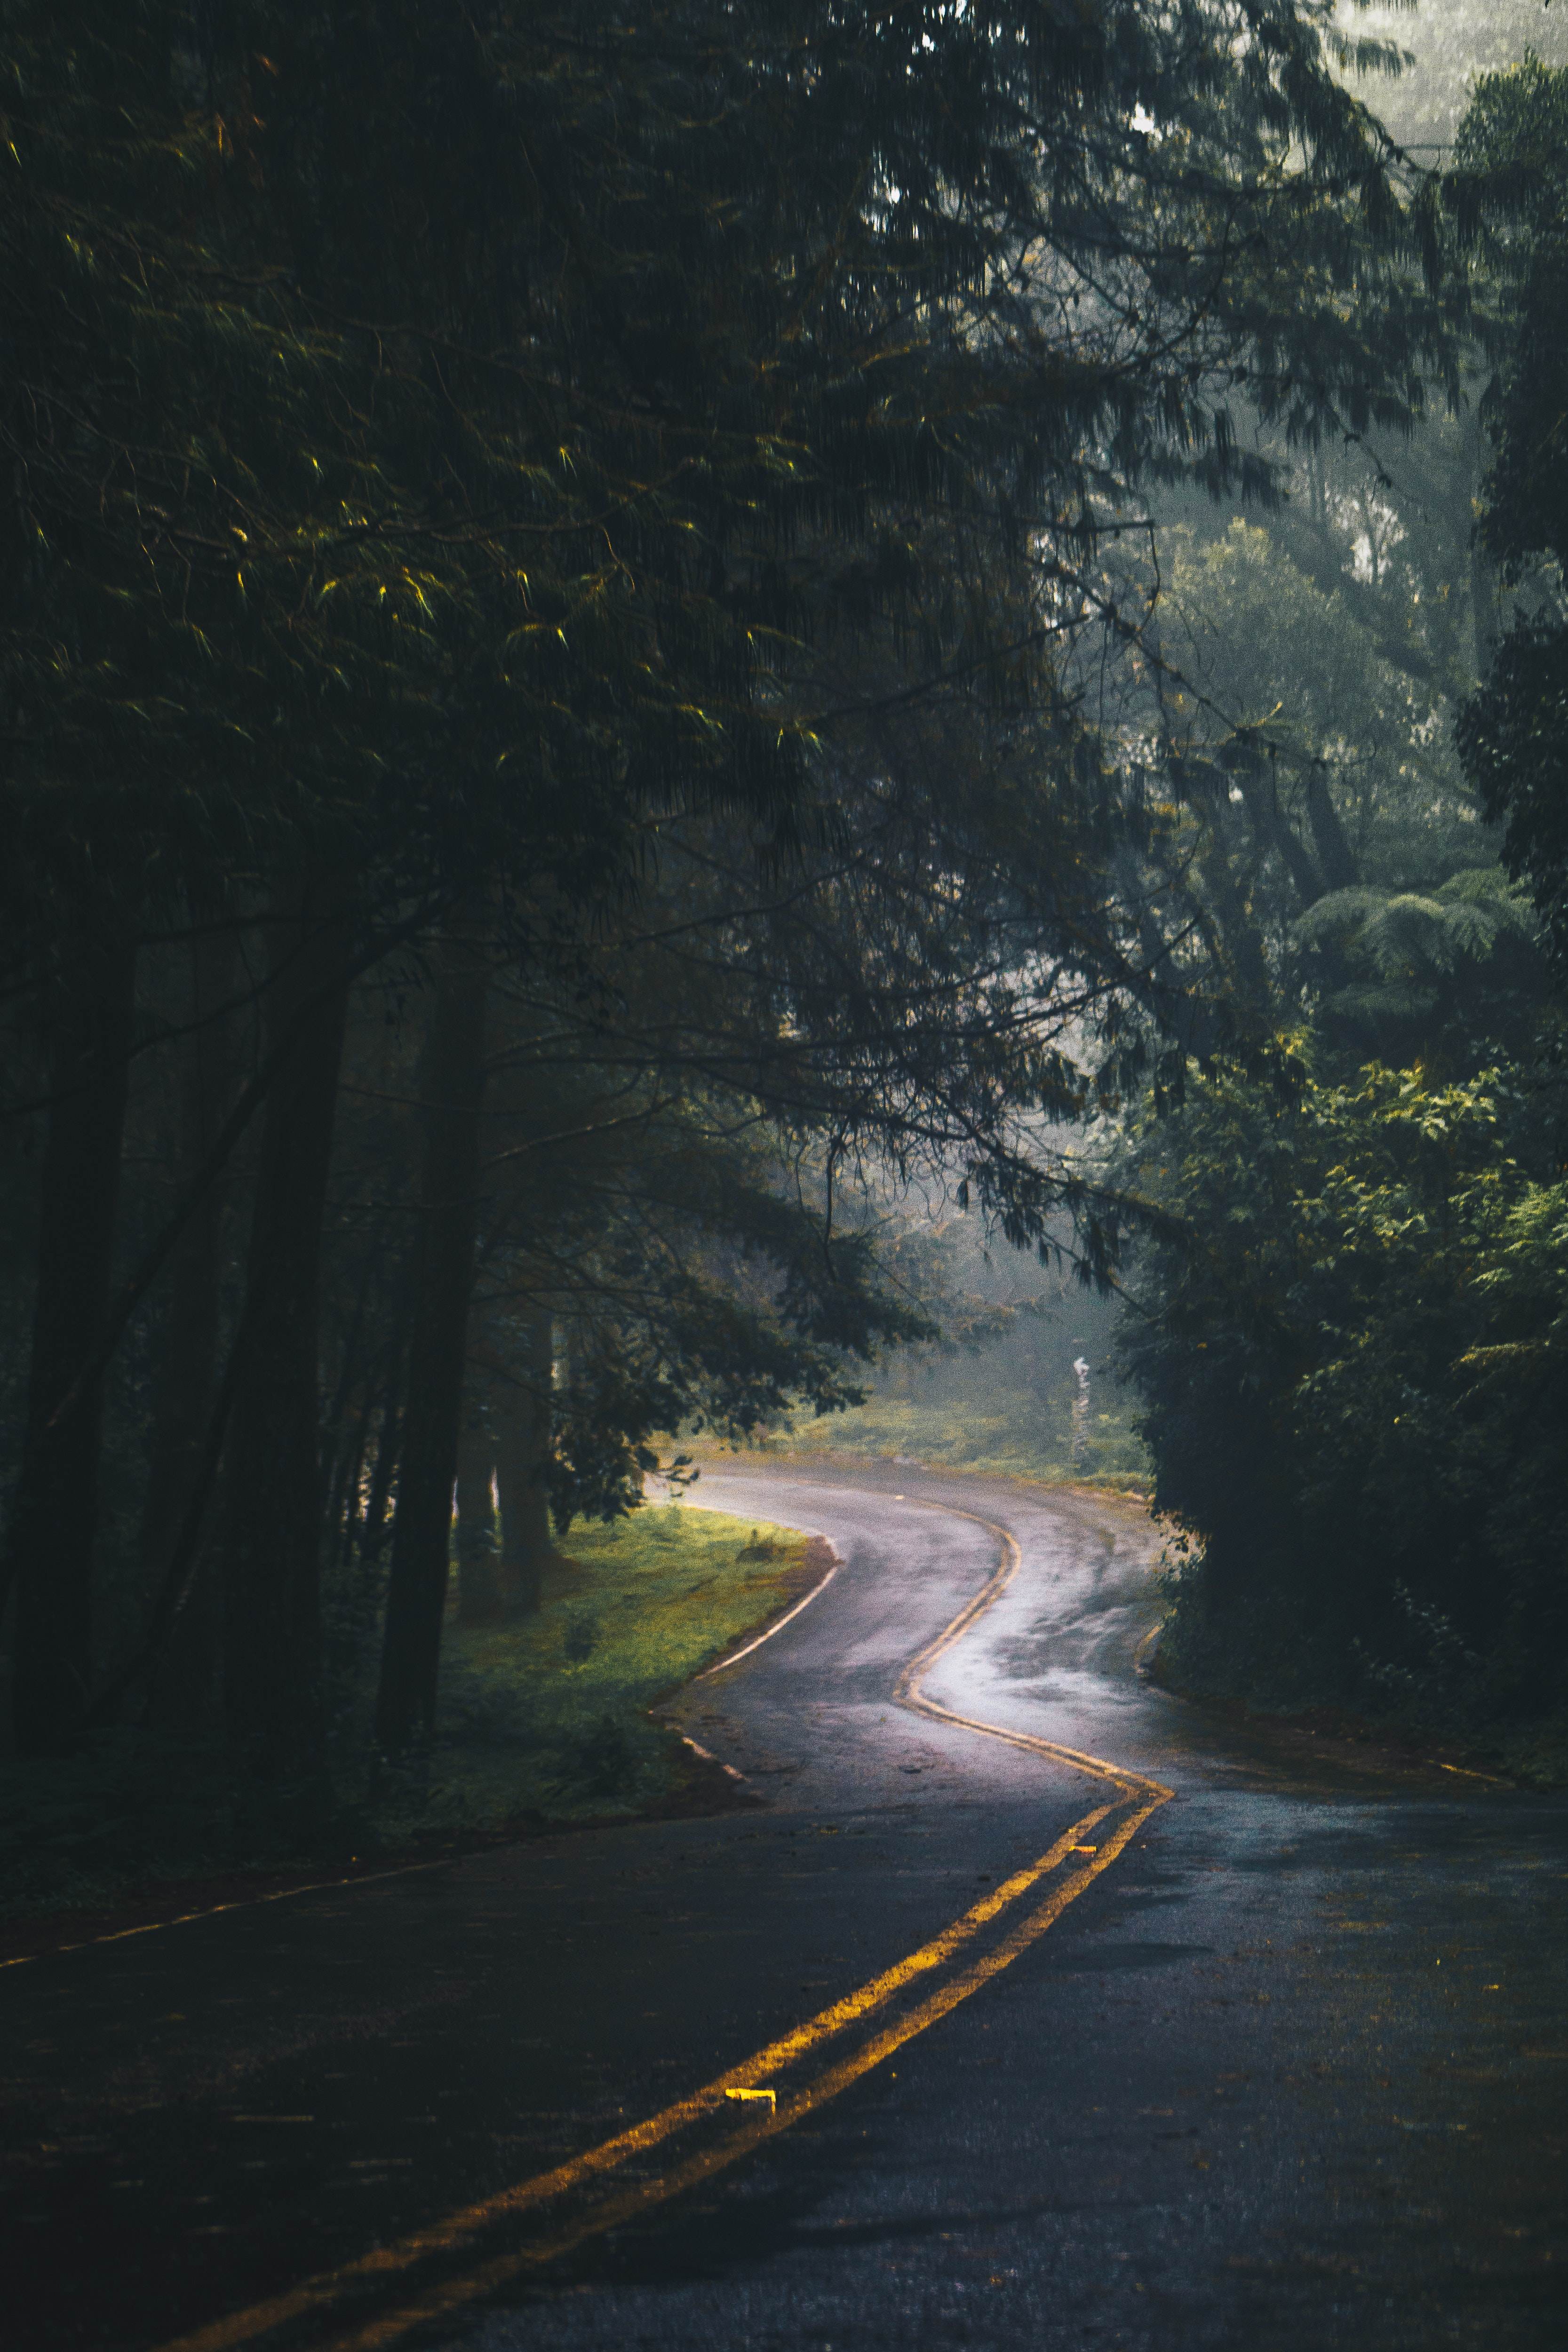 landscape-photography-of-road-and-forest-775203